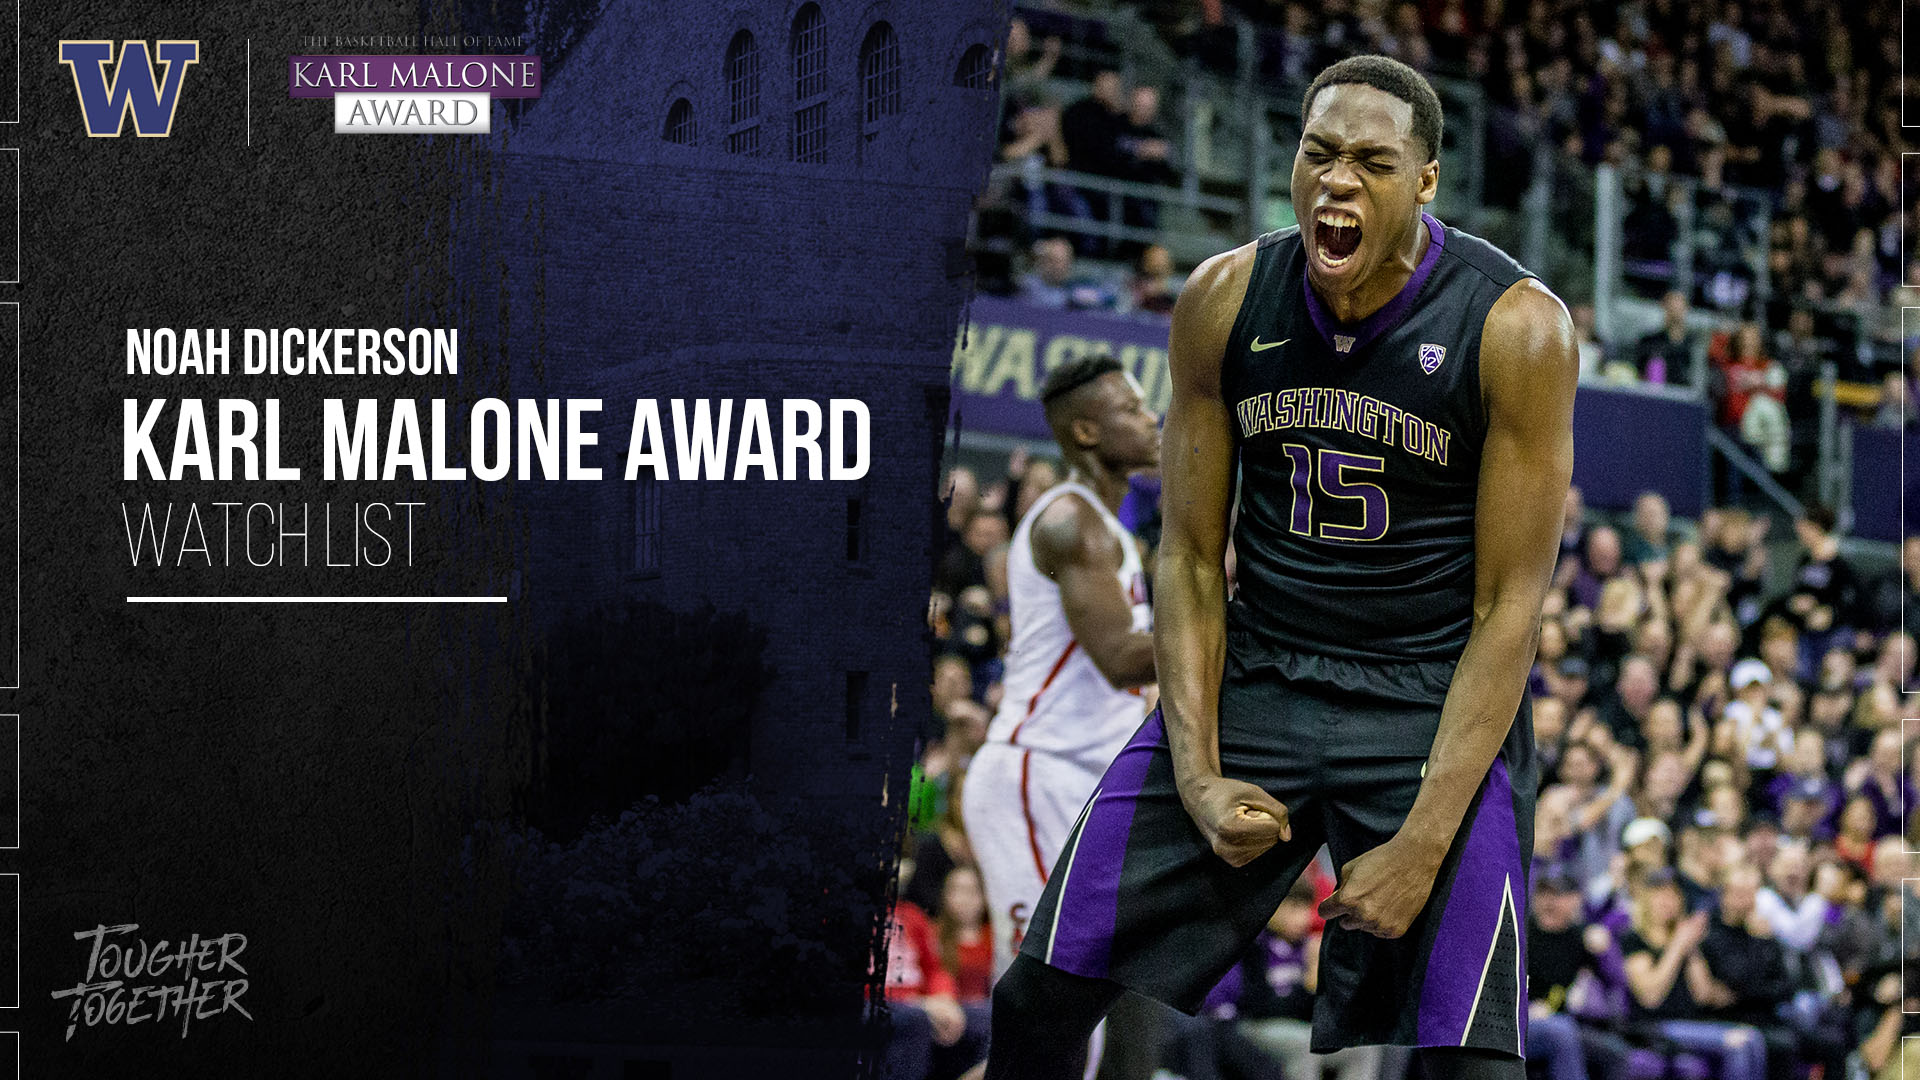 Dickerson Named To Karl Malone Award Watch List